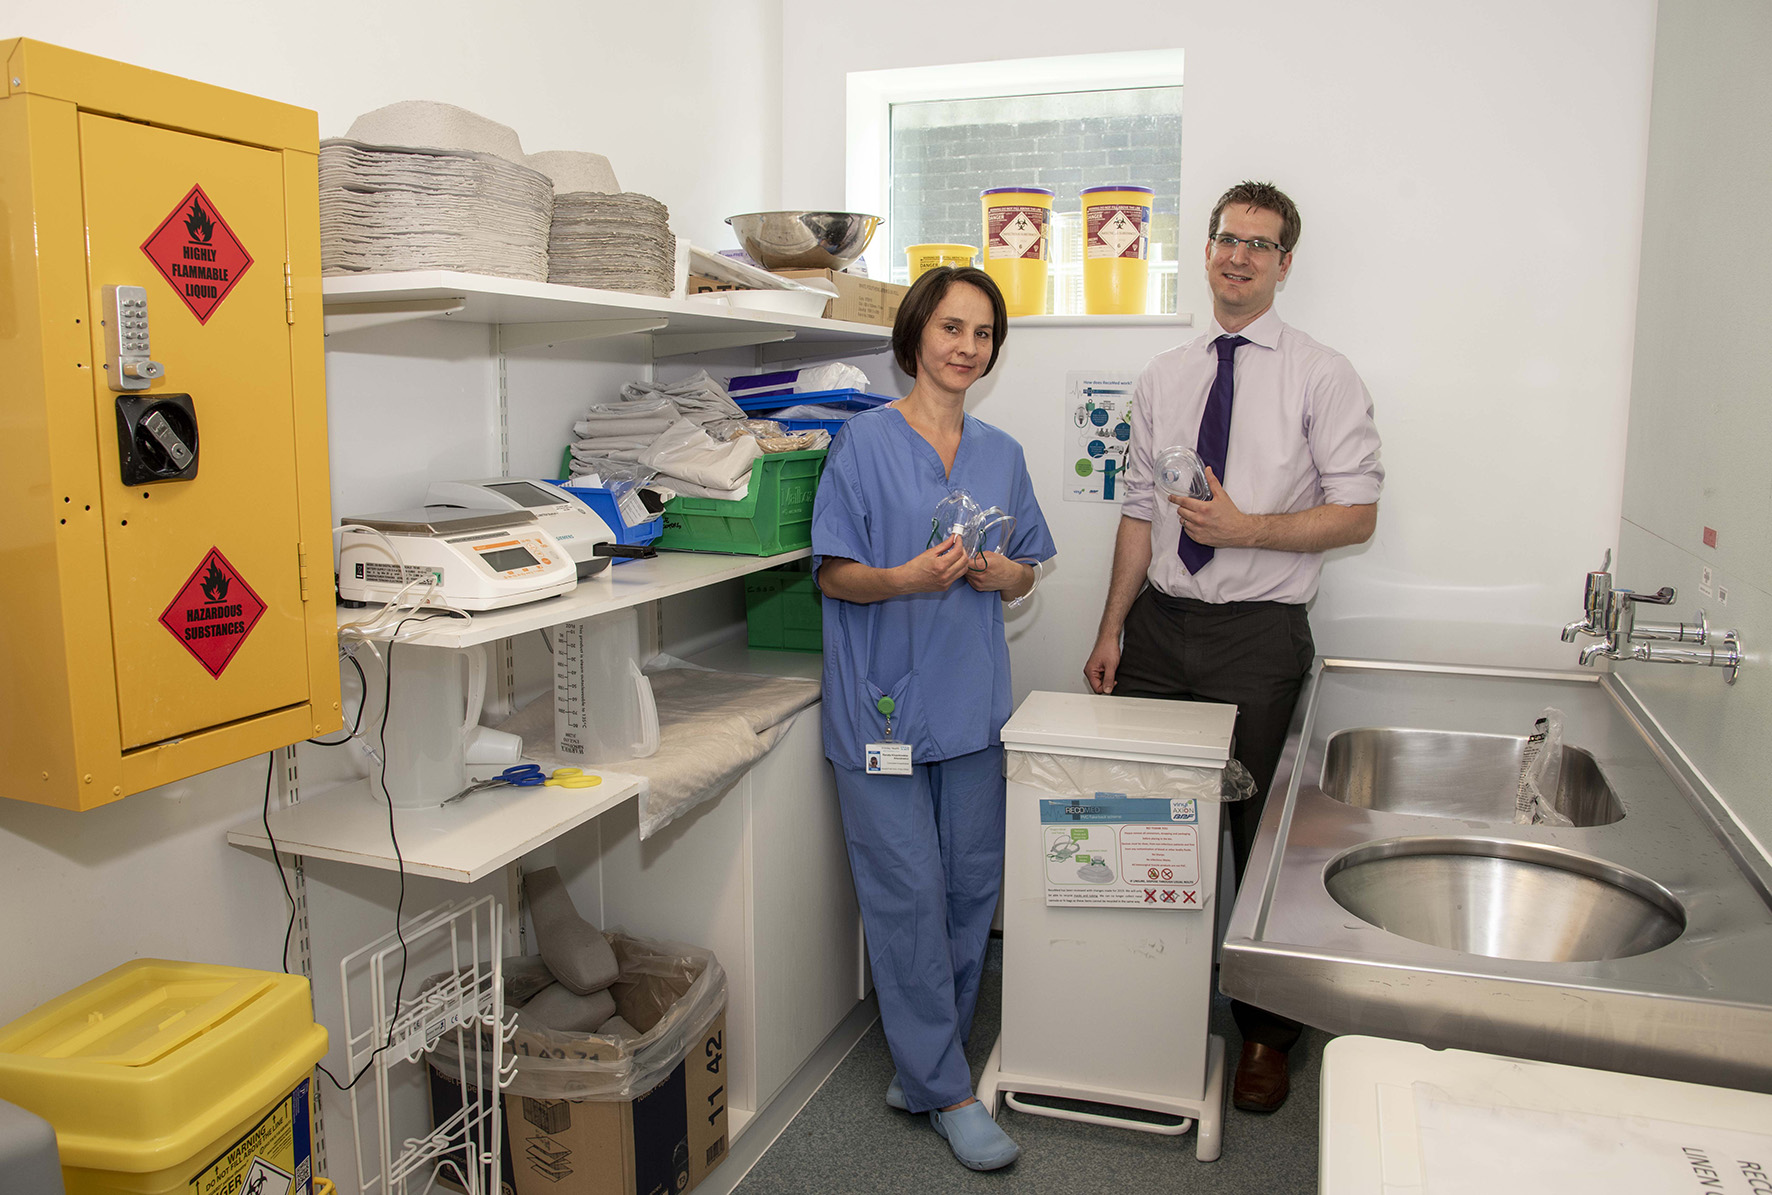 Around 500kgs of PVC has been collected at Wexham Park Hospital alone and, since August 2018, removing recyclable PVC from the incineration waste stream overall has saved the Trust around £200.